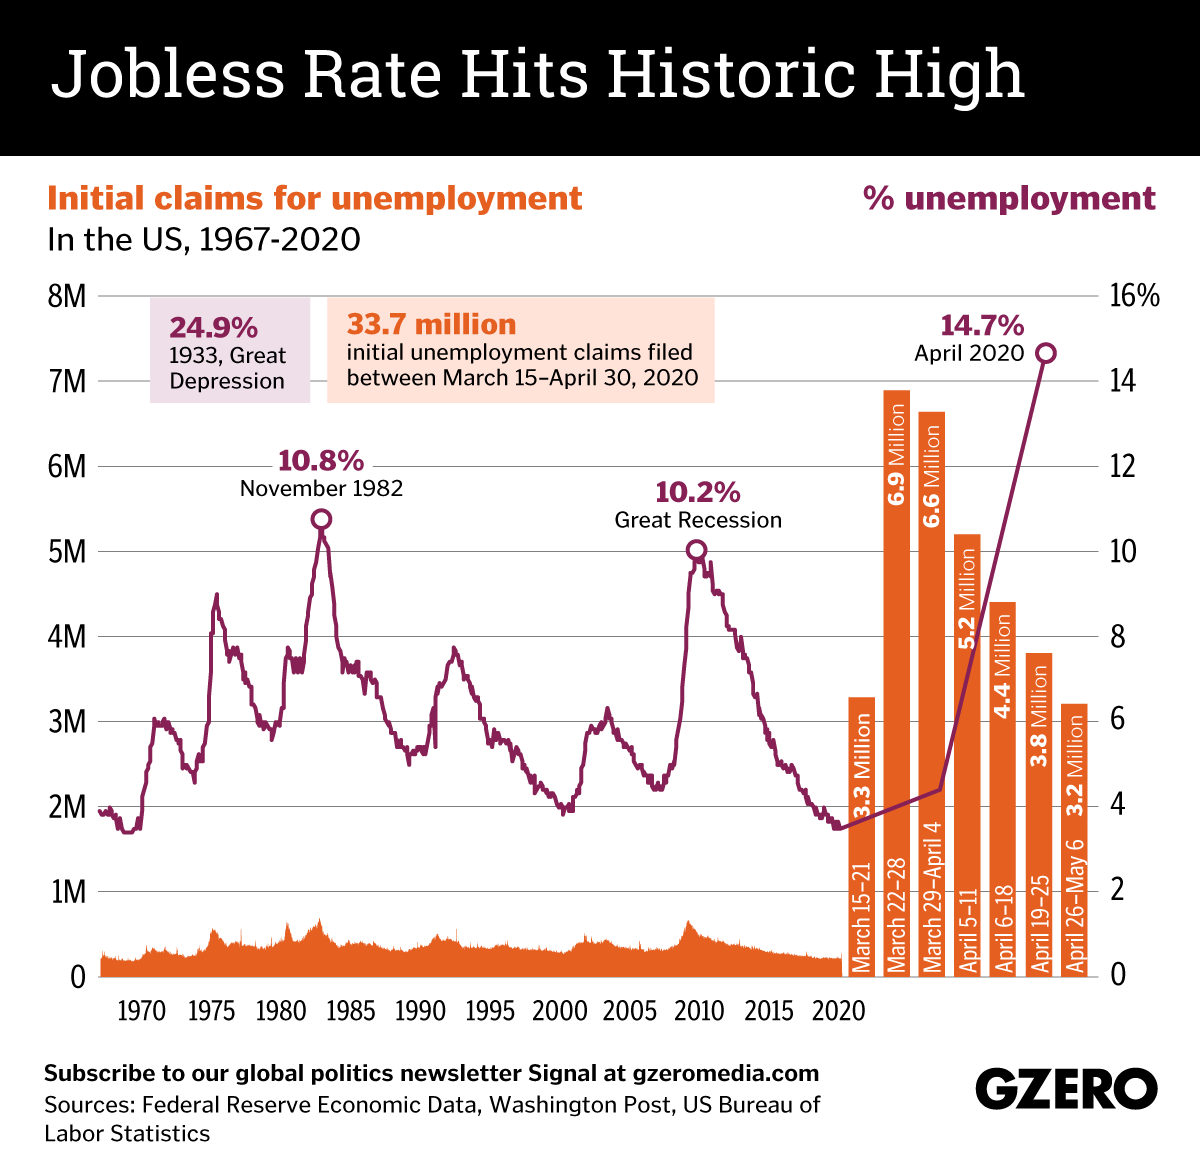 April 2020 US jobless rate hits historic high